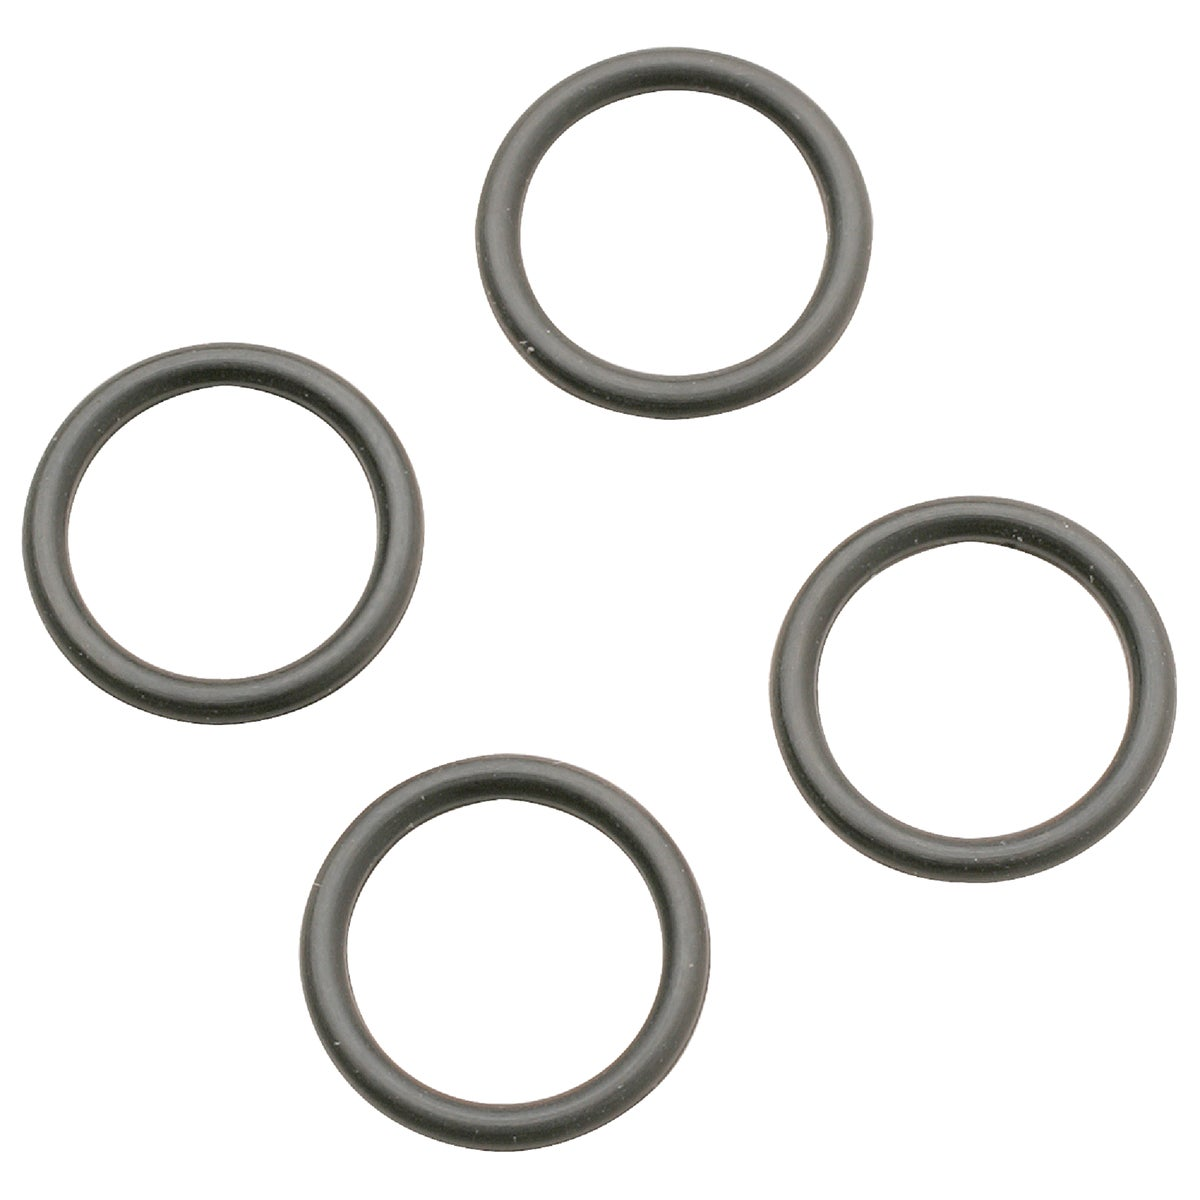 "7/16""ID O-RINGS - 402371 by Plumb Pak/keeney Mfg"